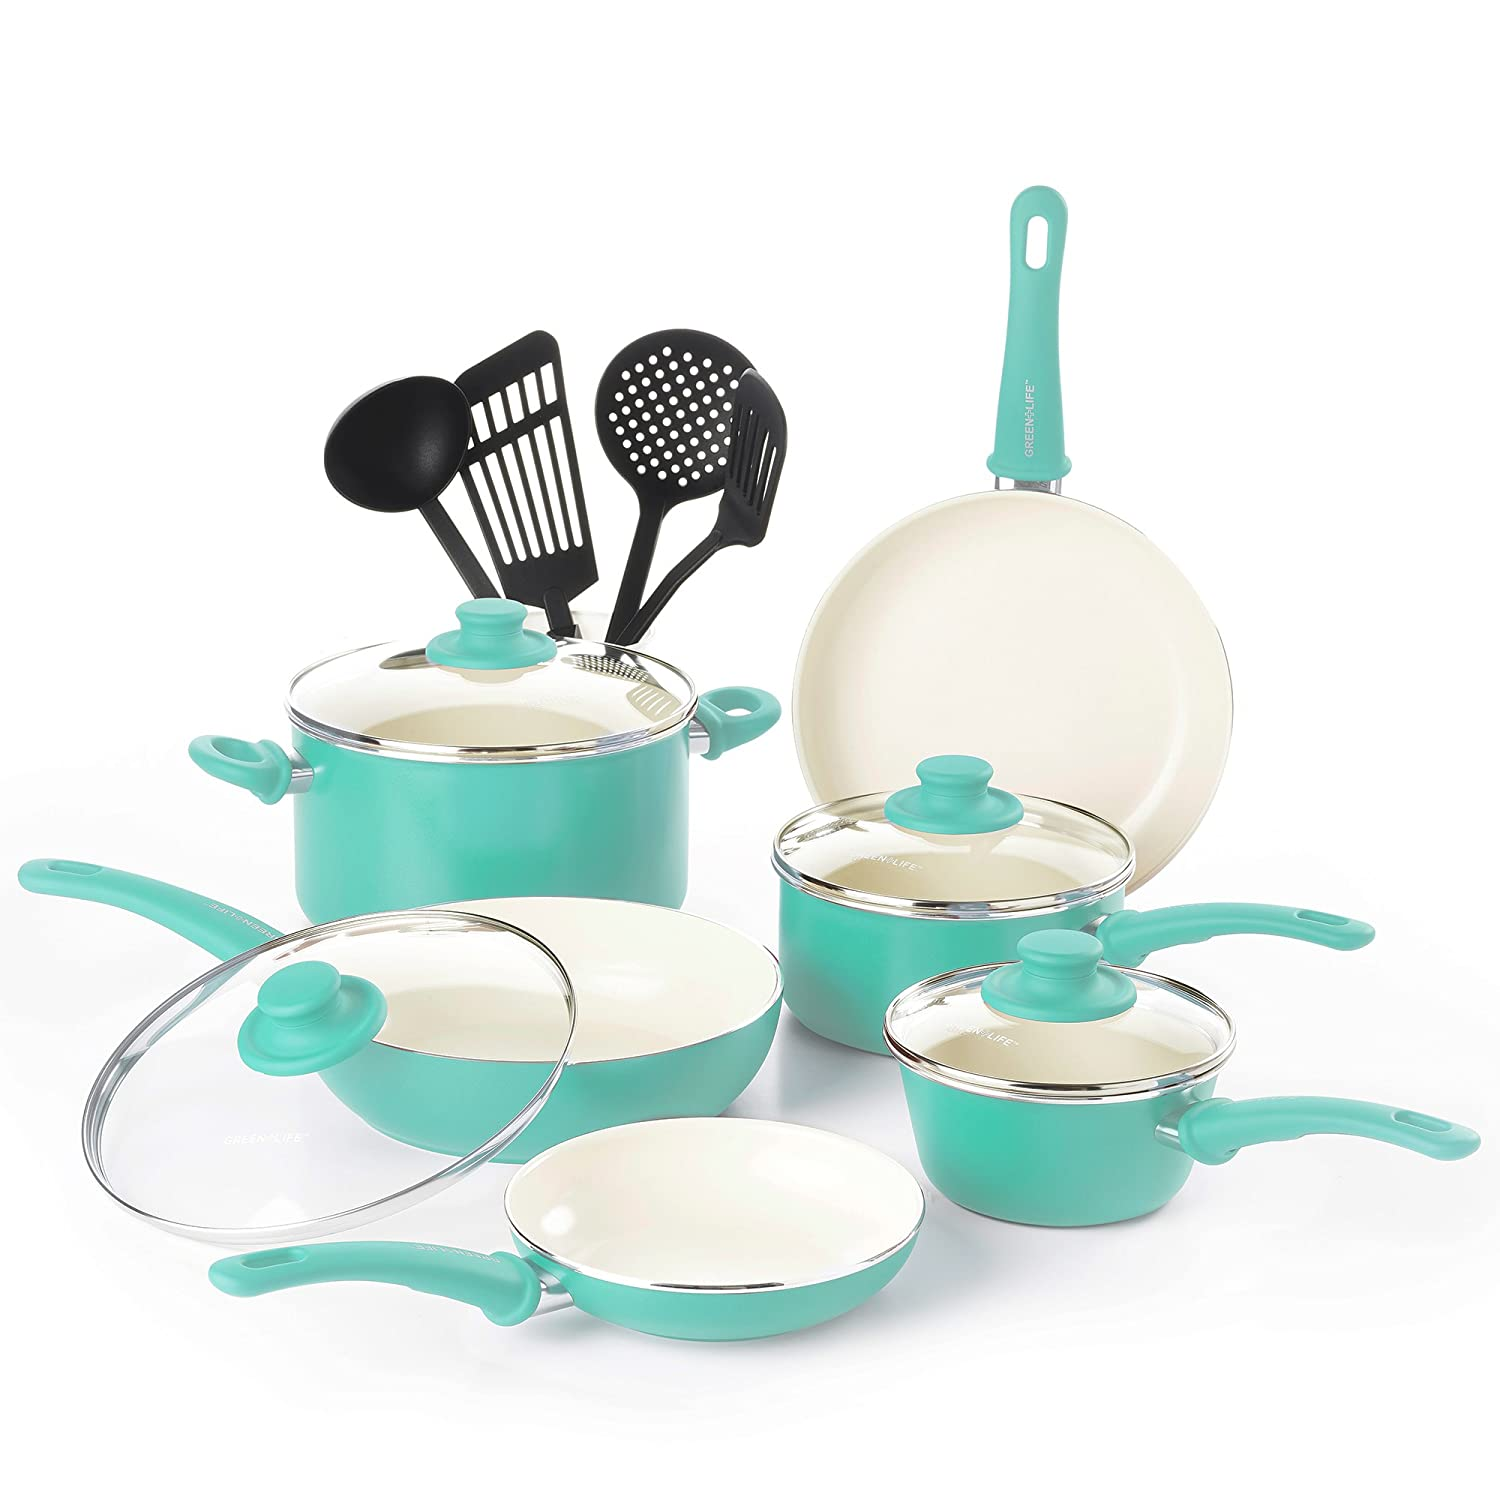 GreenLife CW000531-002 Soft Grip Ceramic Cookware Set